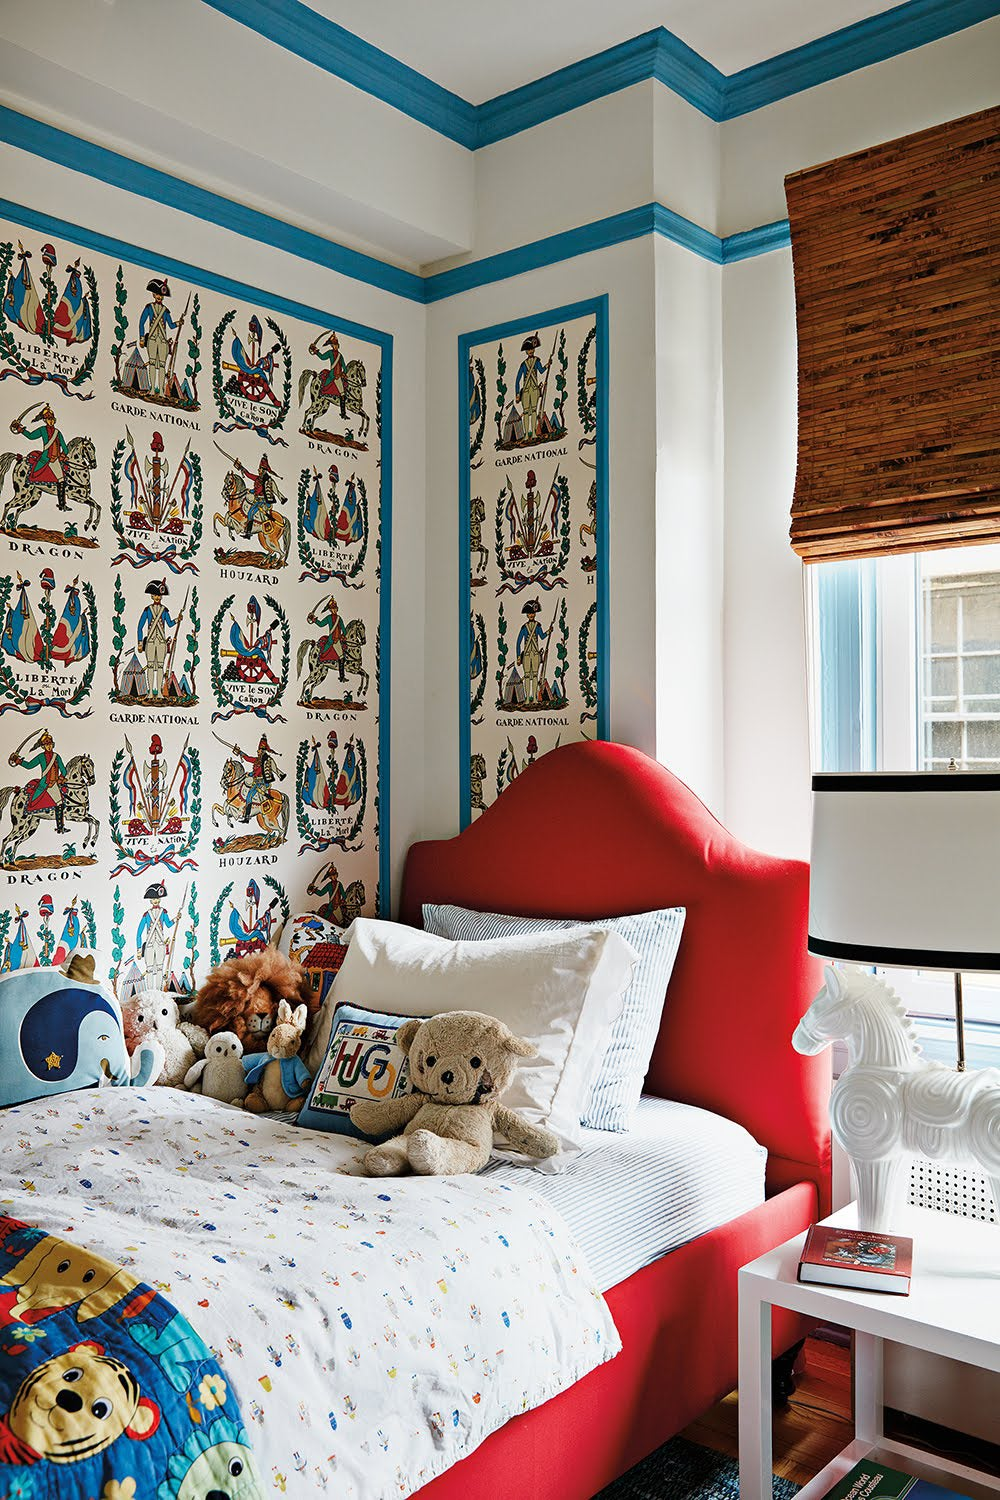 Best Kid Room Designs: 8 Kids' Room Ideas Far Bigger Than The Spaces They Live In